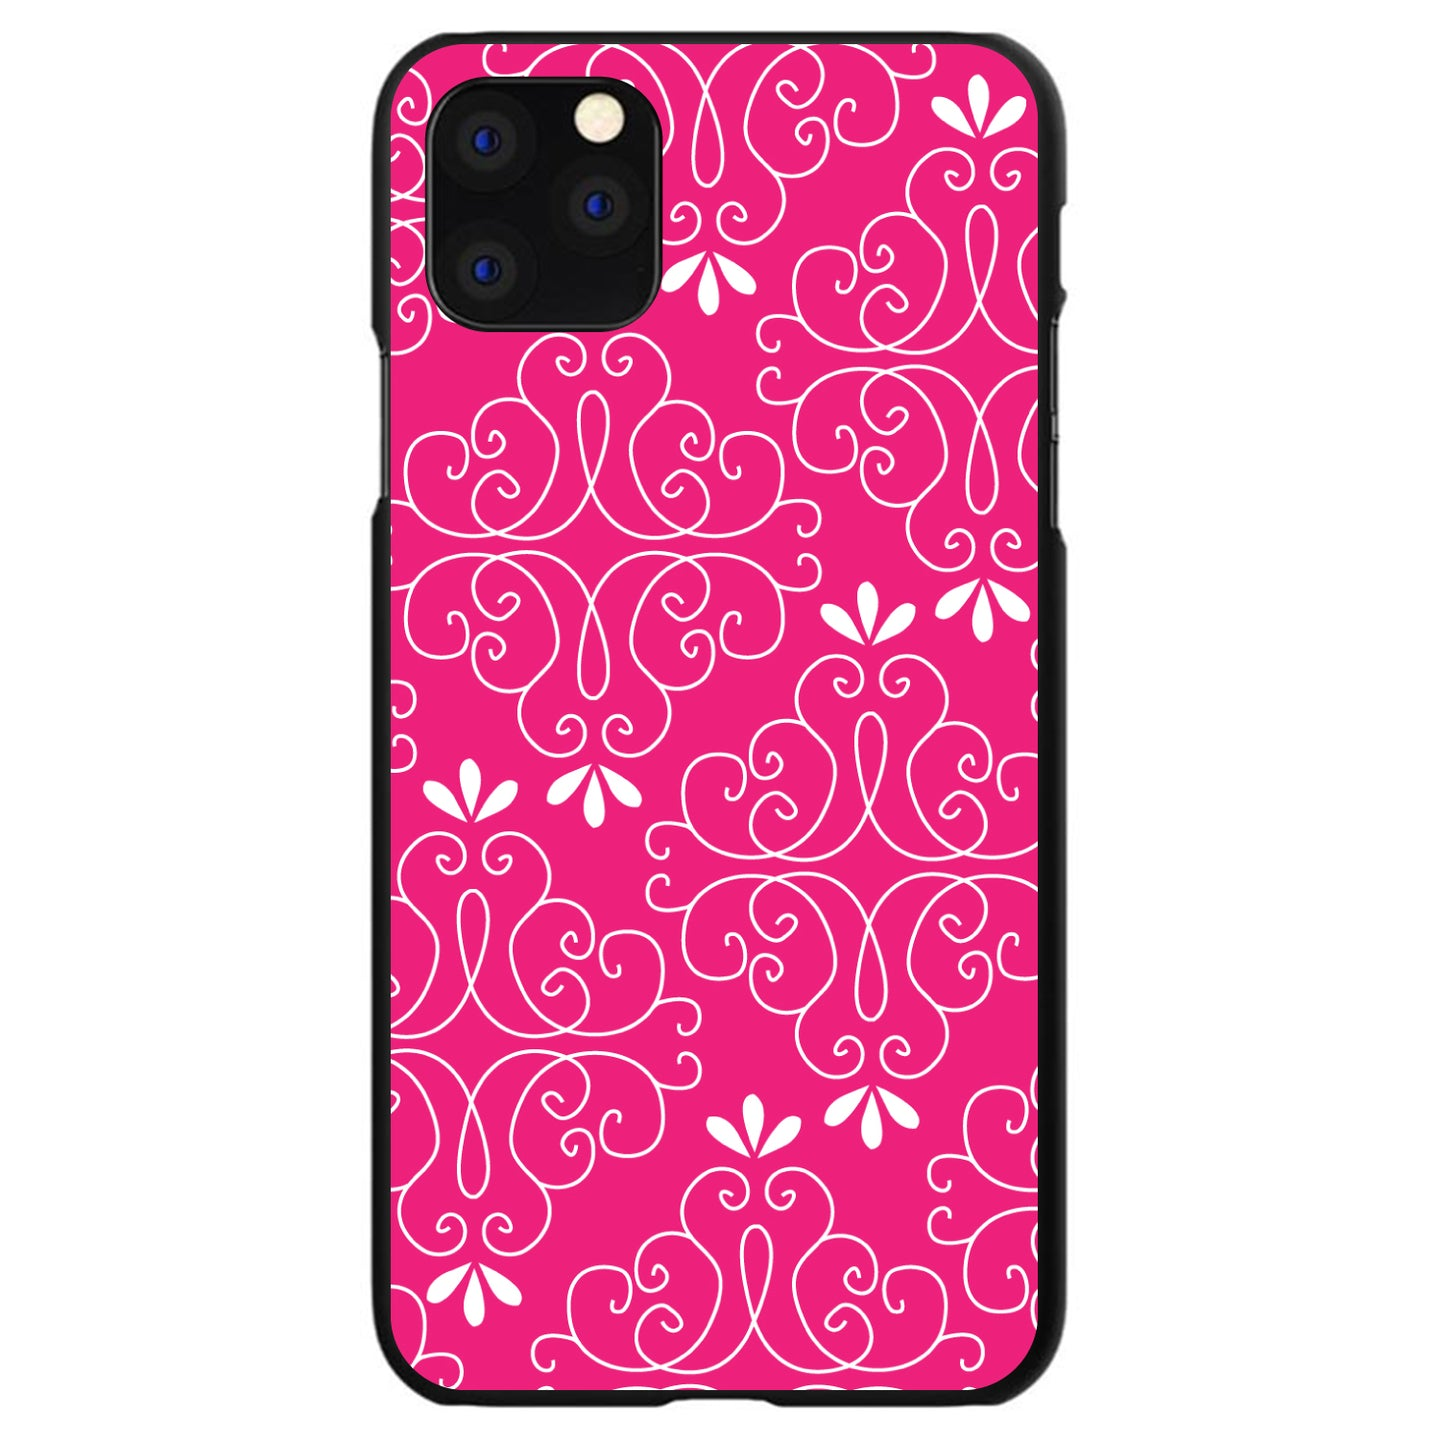 DistinctInk® Hard Plastic Snap-On Case for Apple iPhone - Neon Pink White Floral